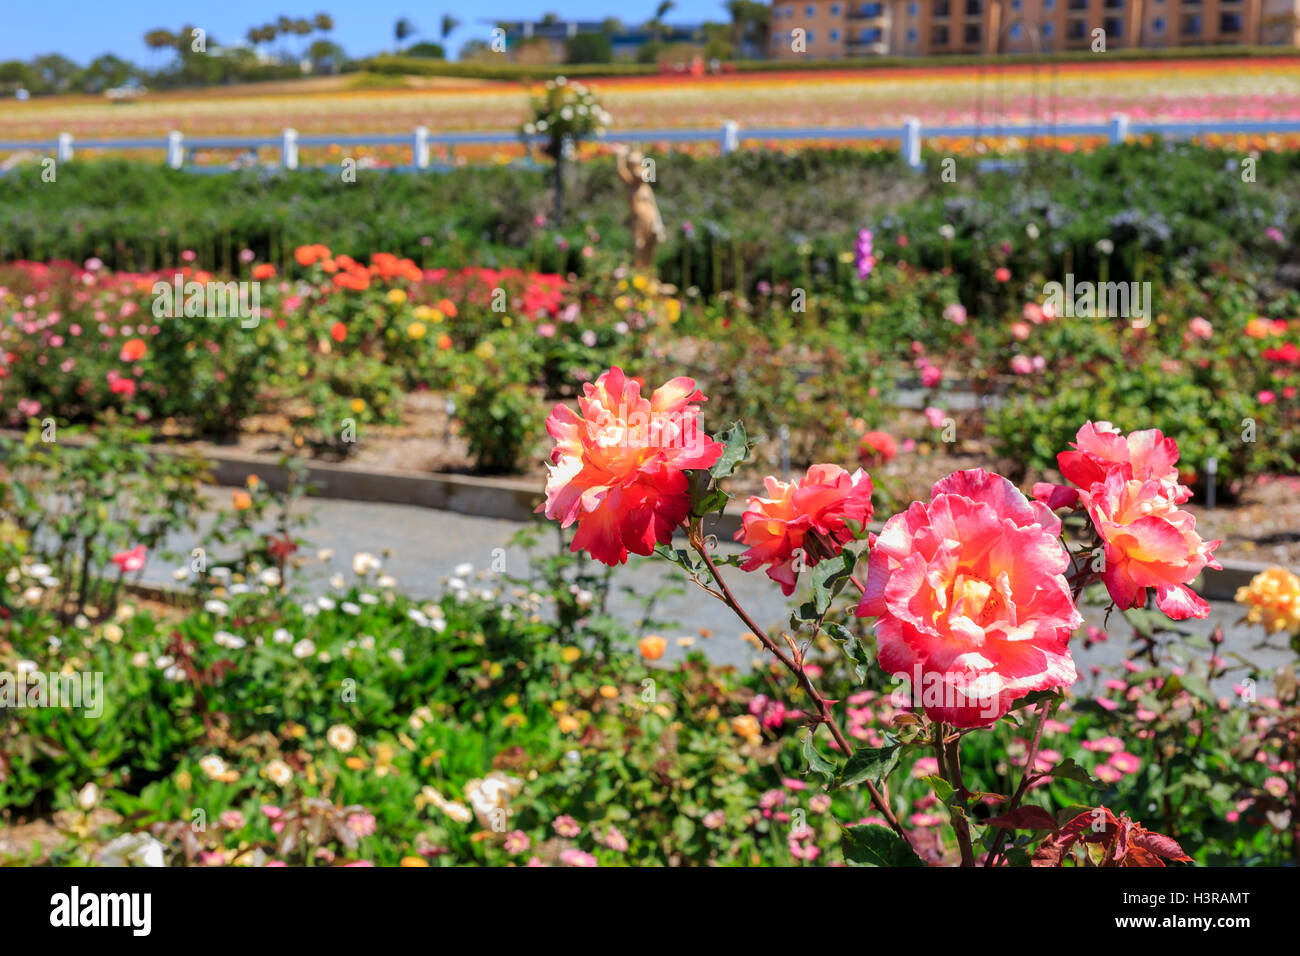 The Beautiful Flower Fields At Carlsbad, California   Stock Image